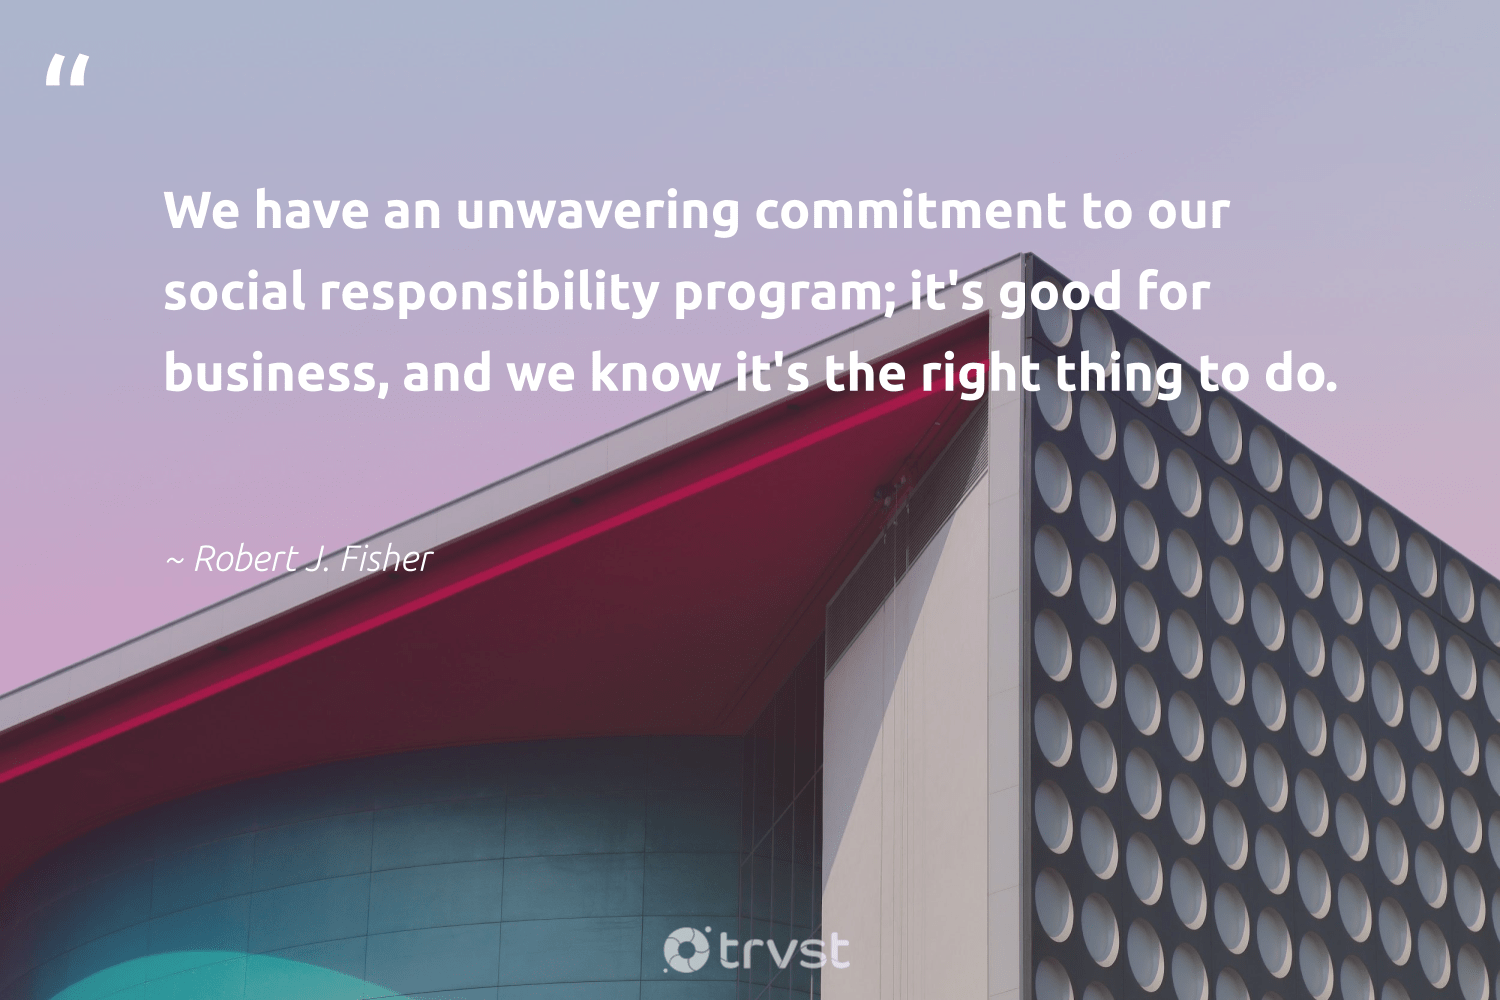 """""""We have an unwavering commitment to our social responsibility program; it's good for business, and we know it's the right thing to do.""""  - Robert J. Fisher #trvst #quotes #sustainable #gogreen #dogood #thinkgreen #weareallone #socialchange #giveback #bethechange #sharedresponsibility #impact"""